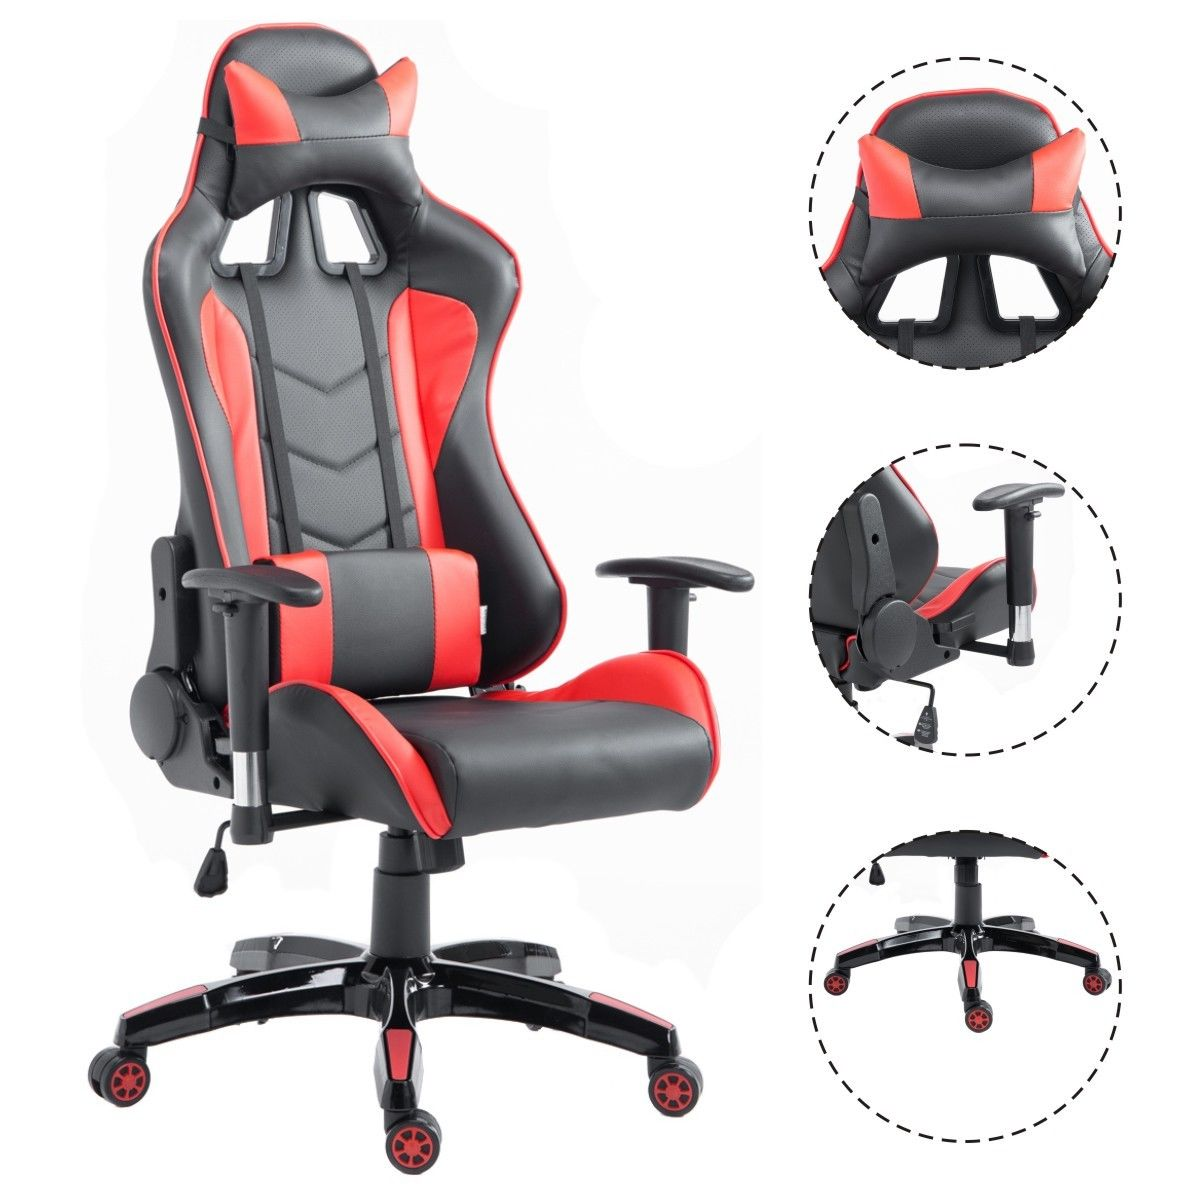 Costway High Back Executive Racing Reclining Gaming Chair Swivel PU Leather Office Chair  sc 1 st  Walmart & Costway High Back Executive Racing Reclining Gaming Chair Swivel ... islam-shia.org